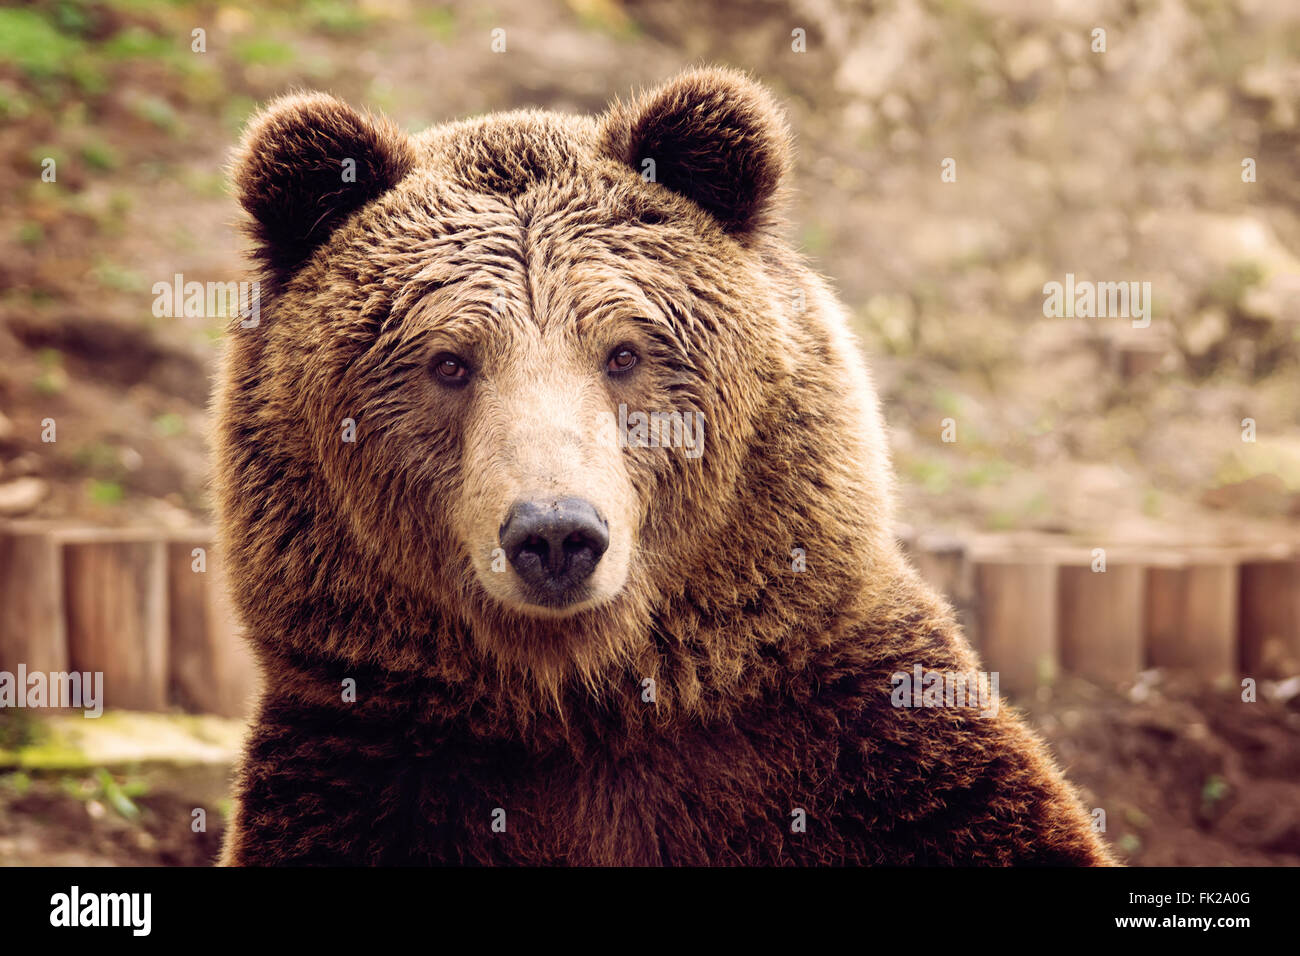 Front view of brown bear - Stock Image